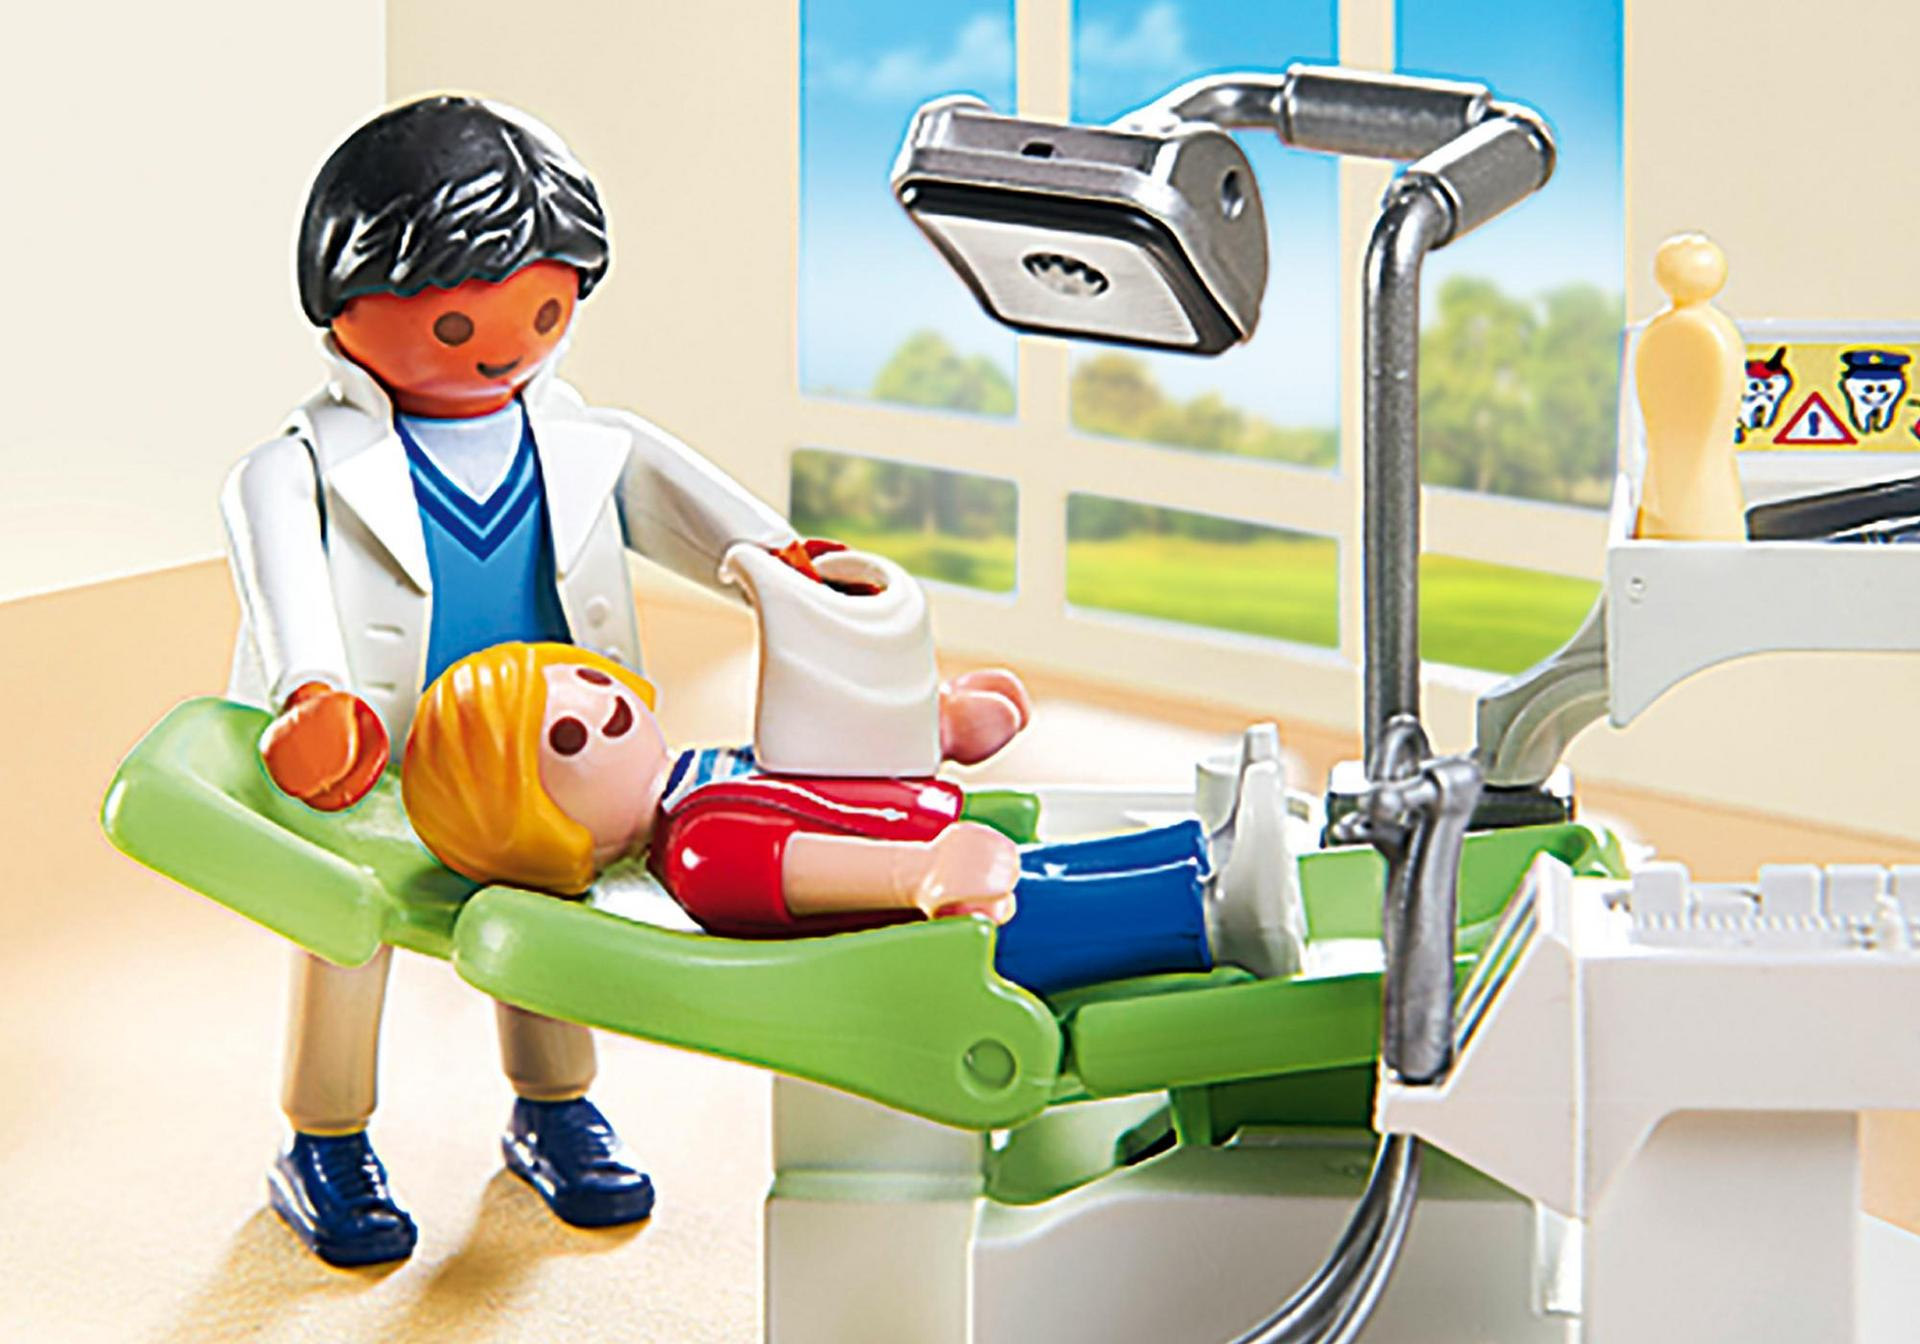 dentist with patient 6662 playmobil 174 usa